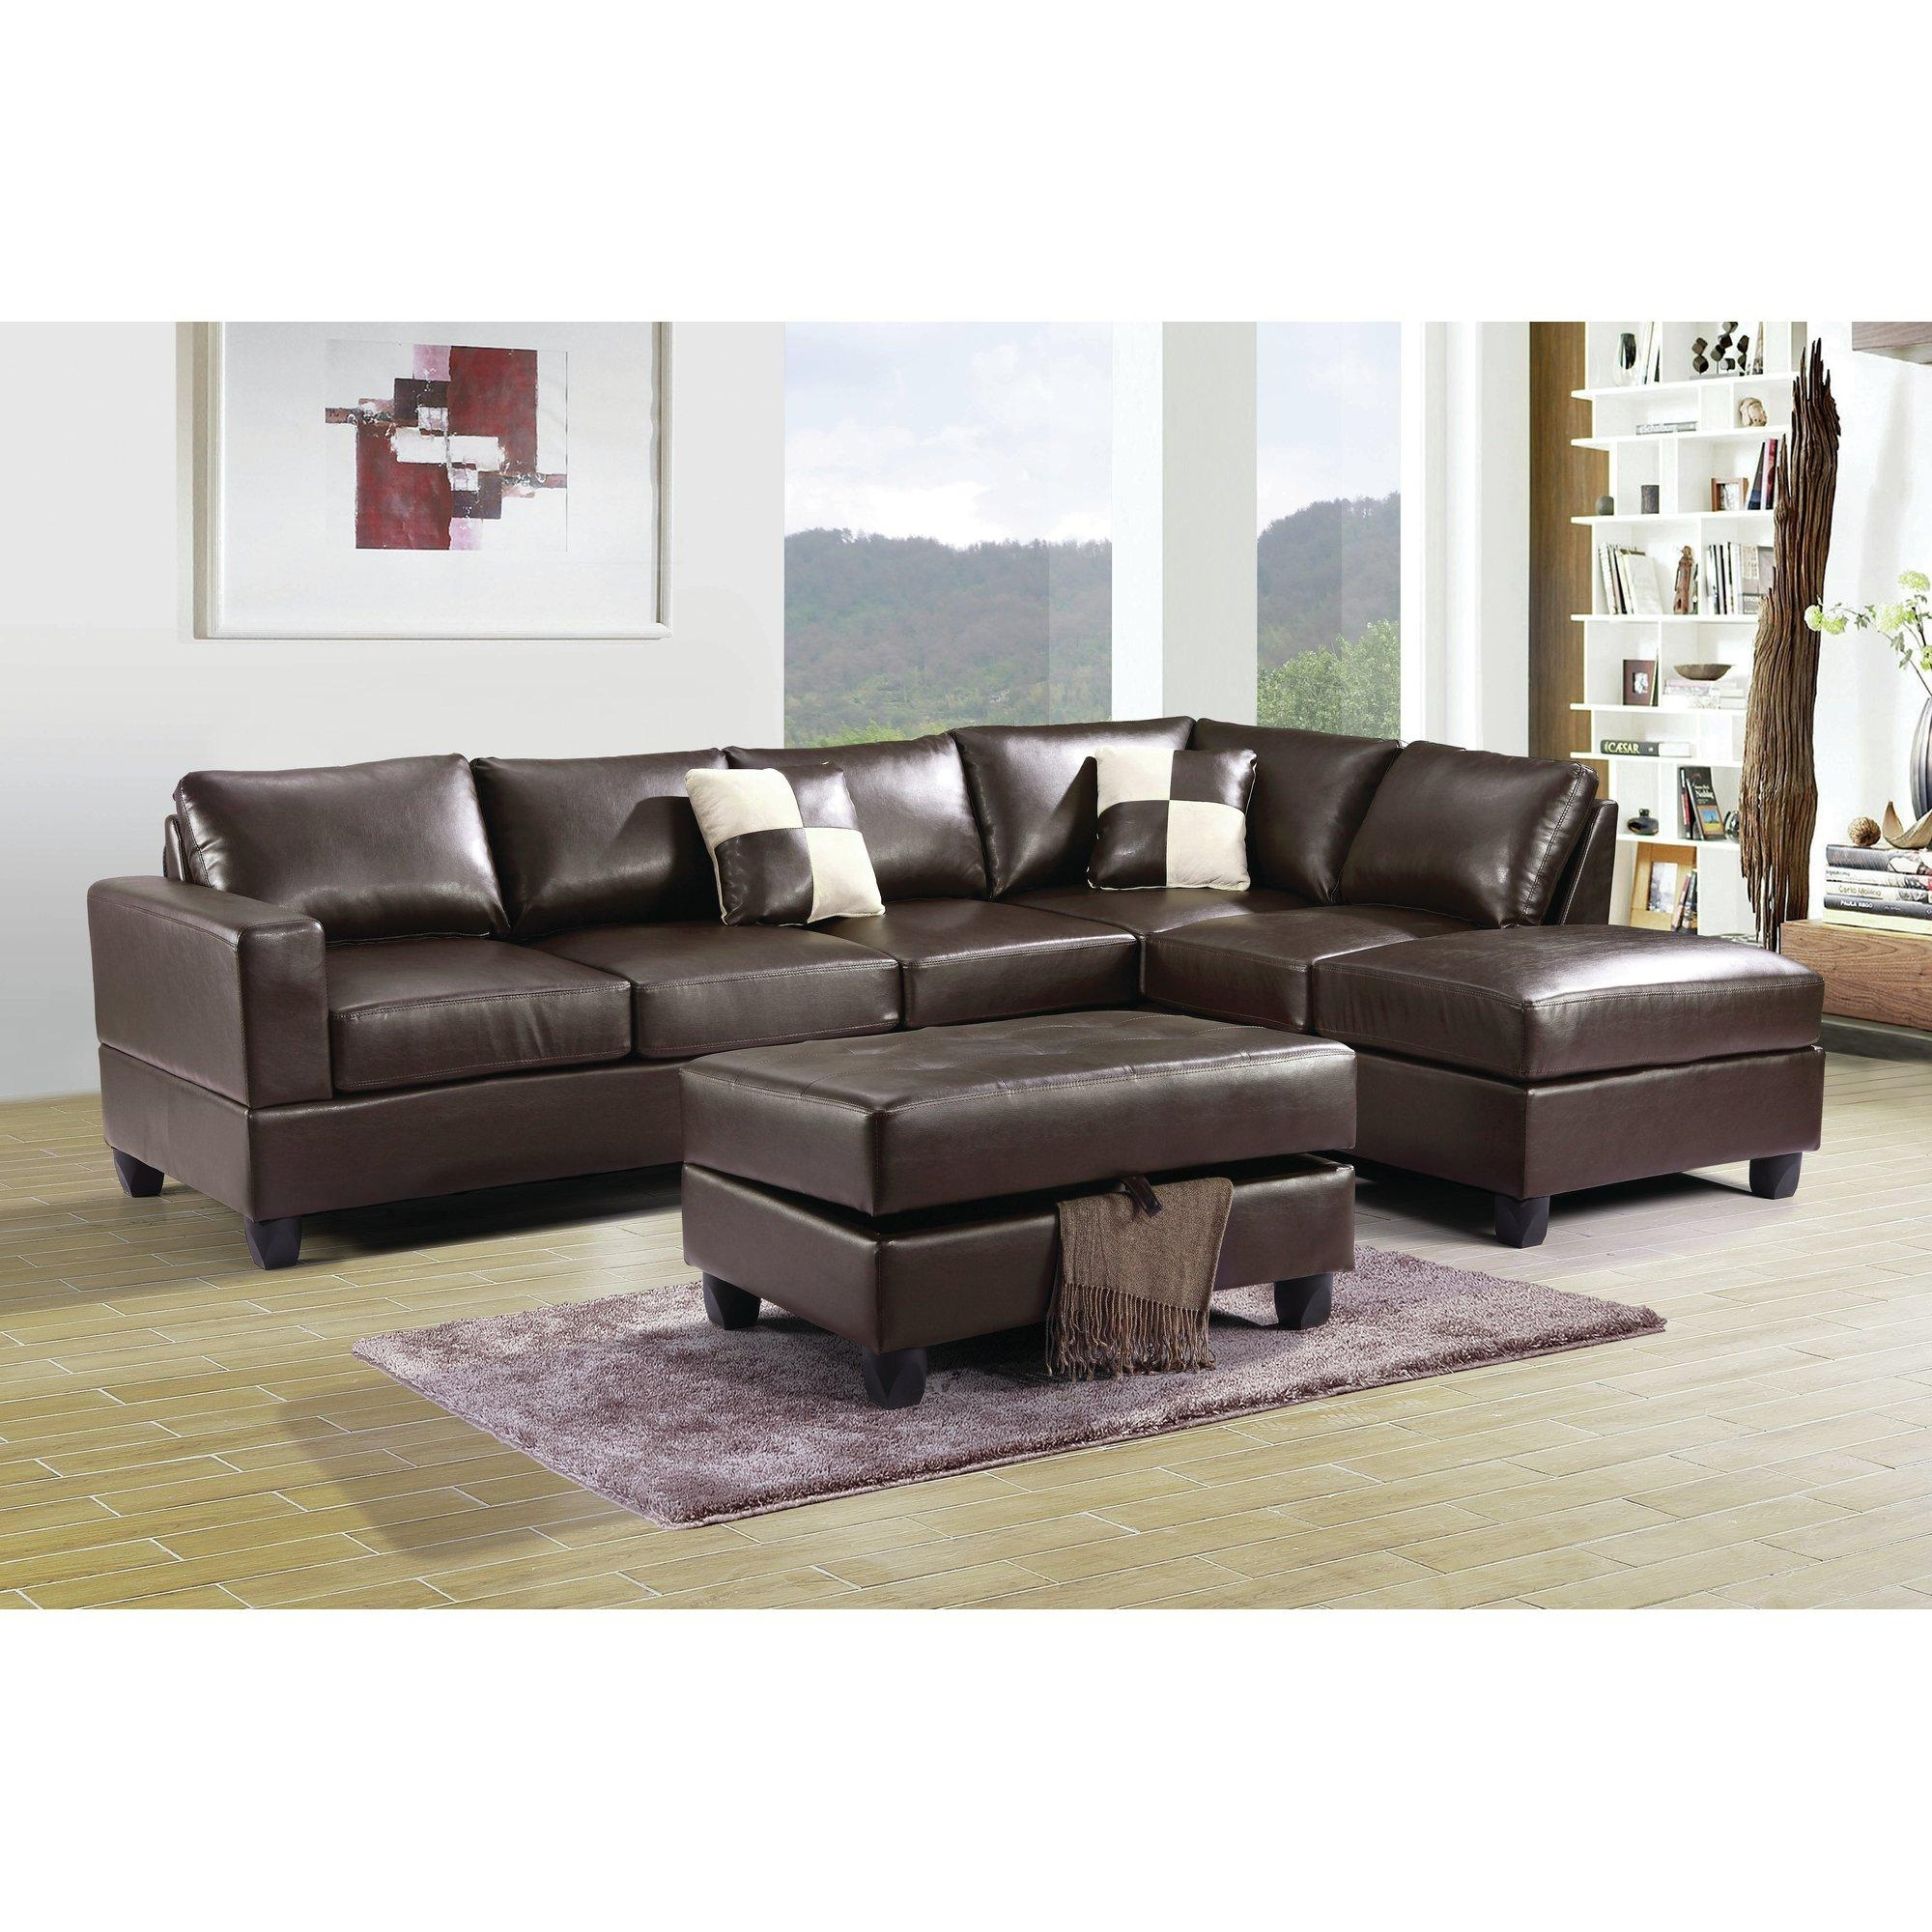 Furniture: Sectional Sofas Amazon | Tufted Sectional Sofa Chaise With Regard To Tufted Sectional Sofa Chaise (View 18 of 20)